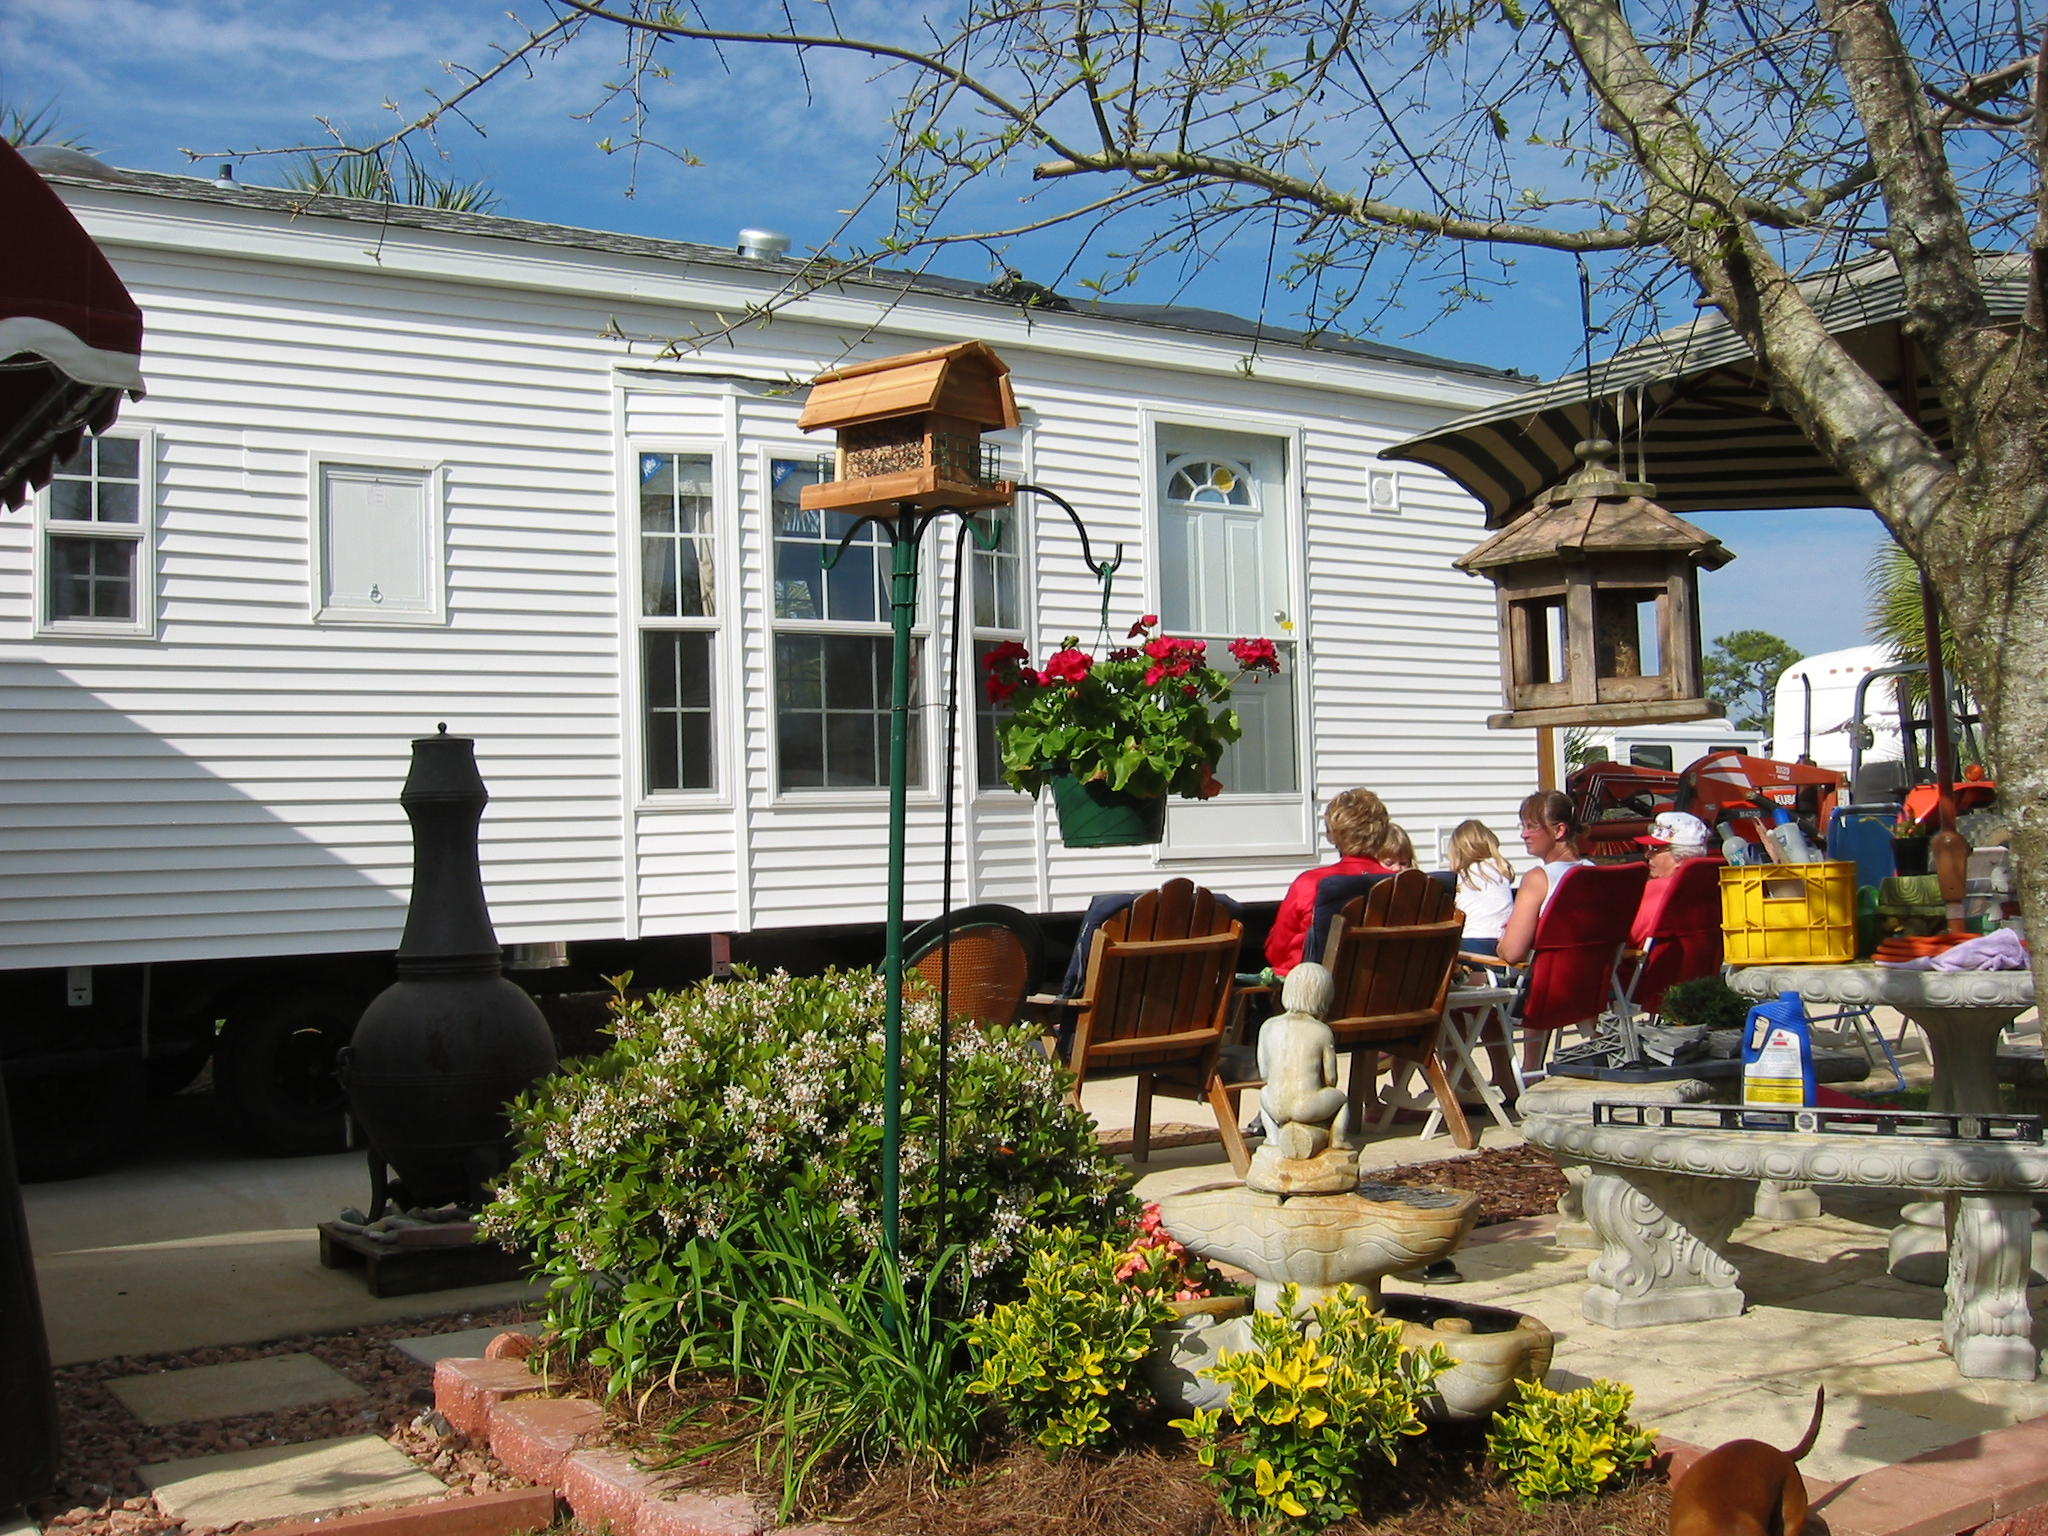 Relaxing Park Models Rv Property Rv Property Free Mobile Homes To Be Moved Near Me Free Mobile Homes To Be Moved Neighbors Brought Ir Lawn Chairs To Watch Everyone Wasexcited Louisiana curbed Free Mobile Homes To Be Moved